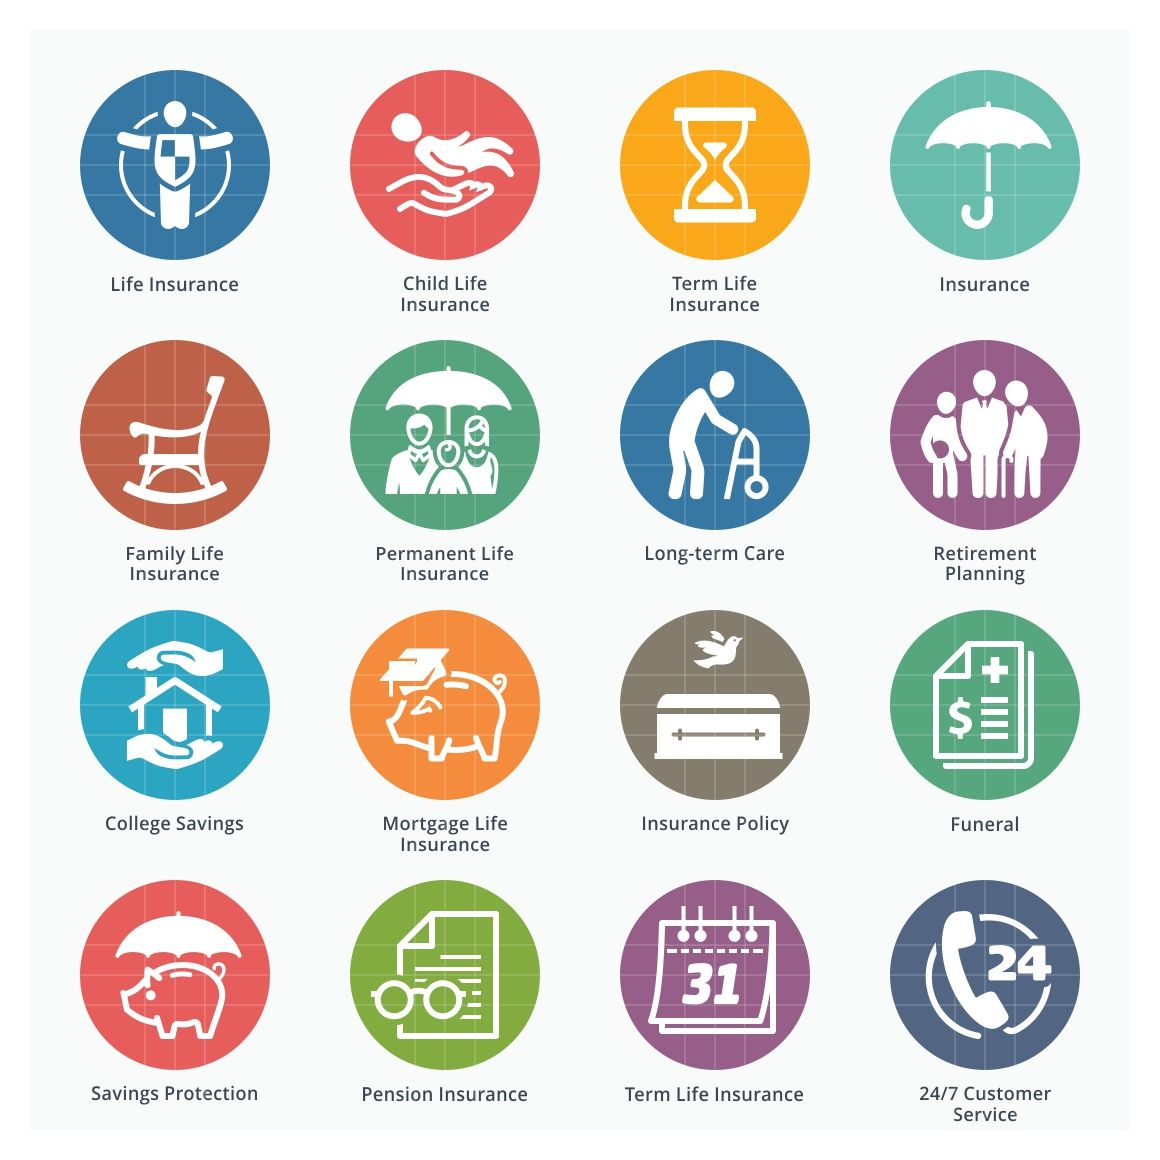 Life Insurance Icons Colored Life Insurance Companies Life